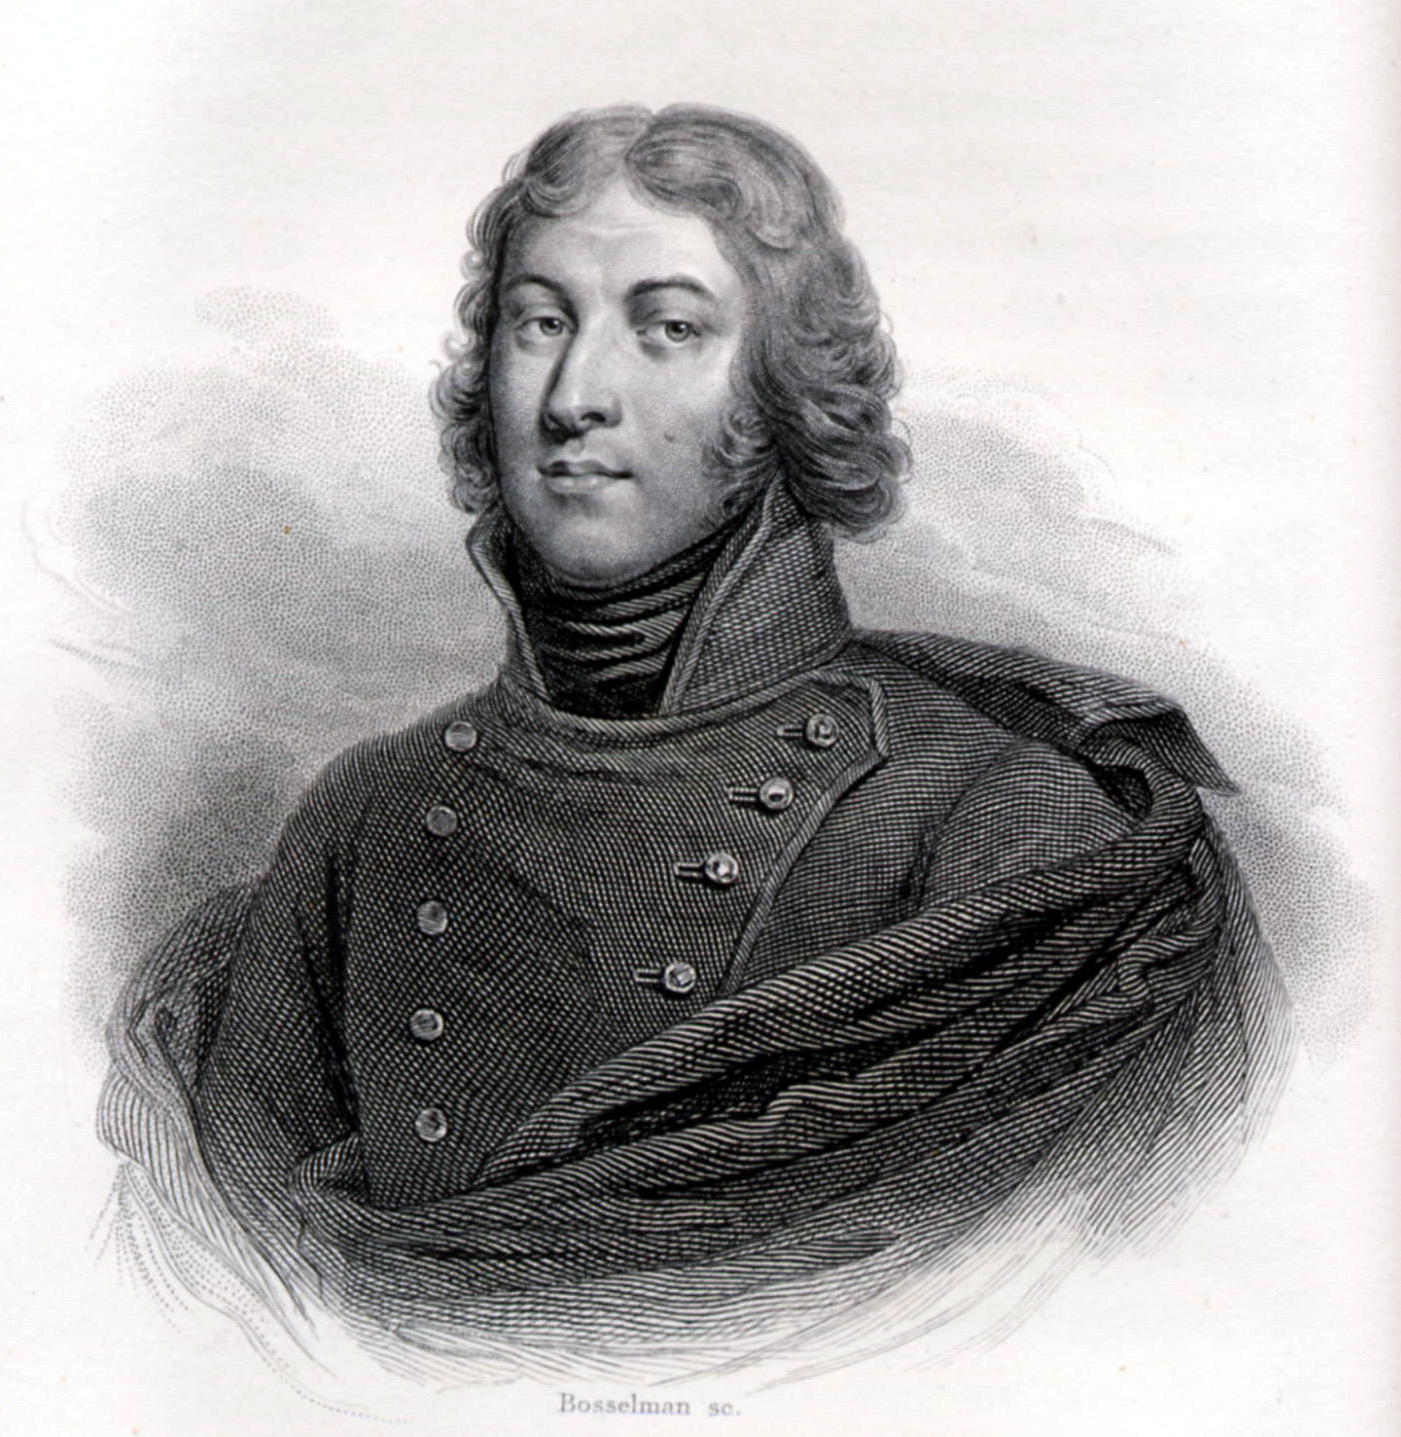 Historical depiction of the revolutionary general Louis-Lazare Hoche